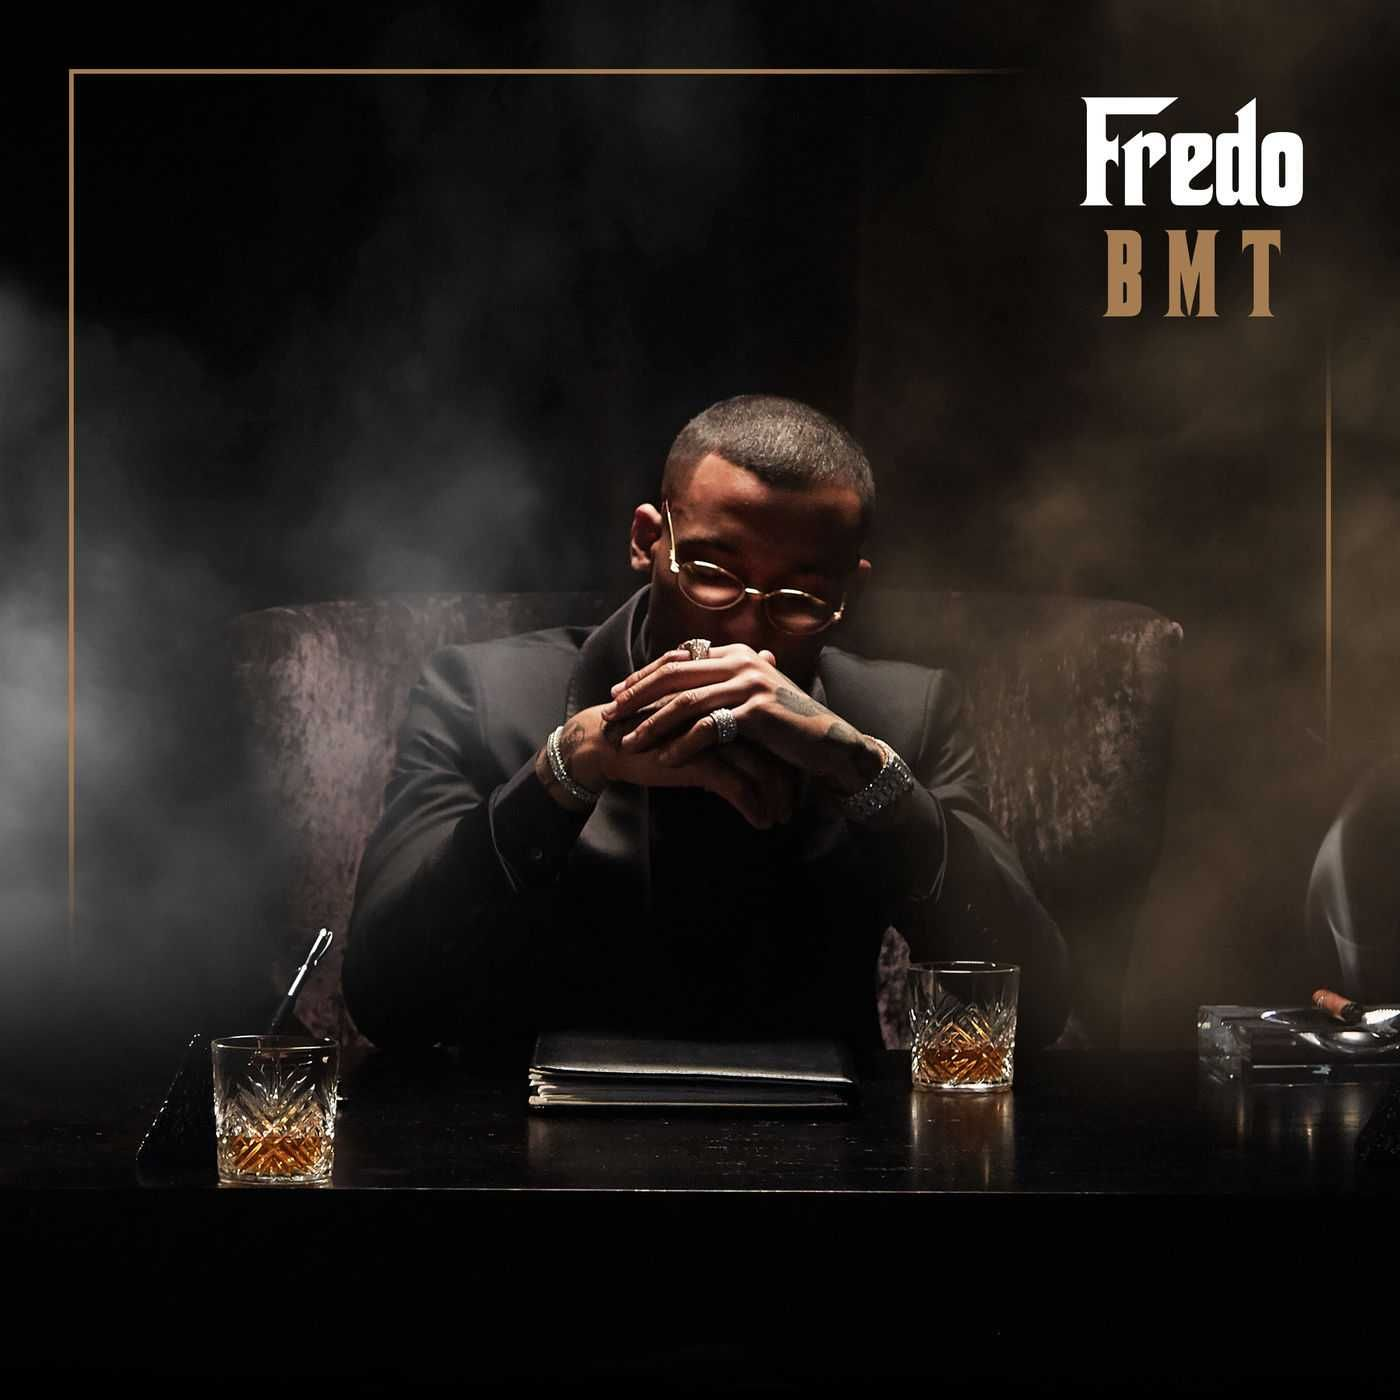 Fredo – BMT Mp3 320kbps Download | FREE DOWNLOADS in 2019